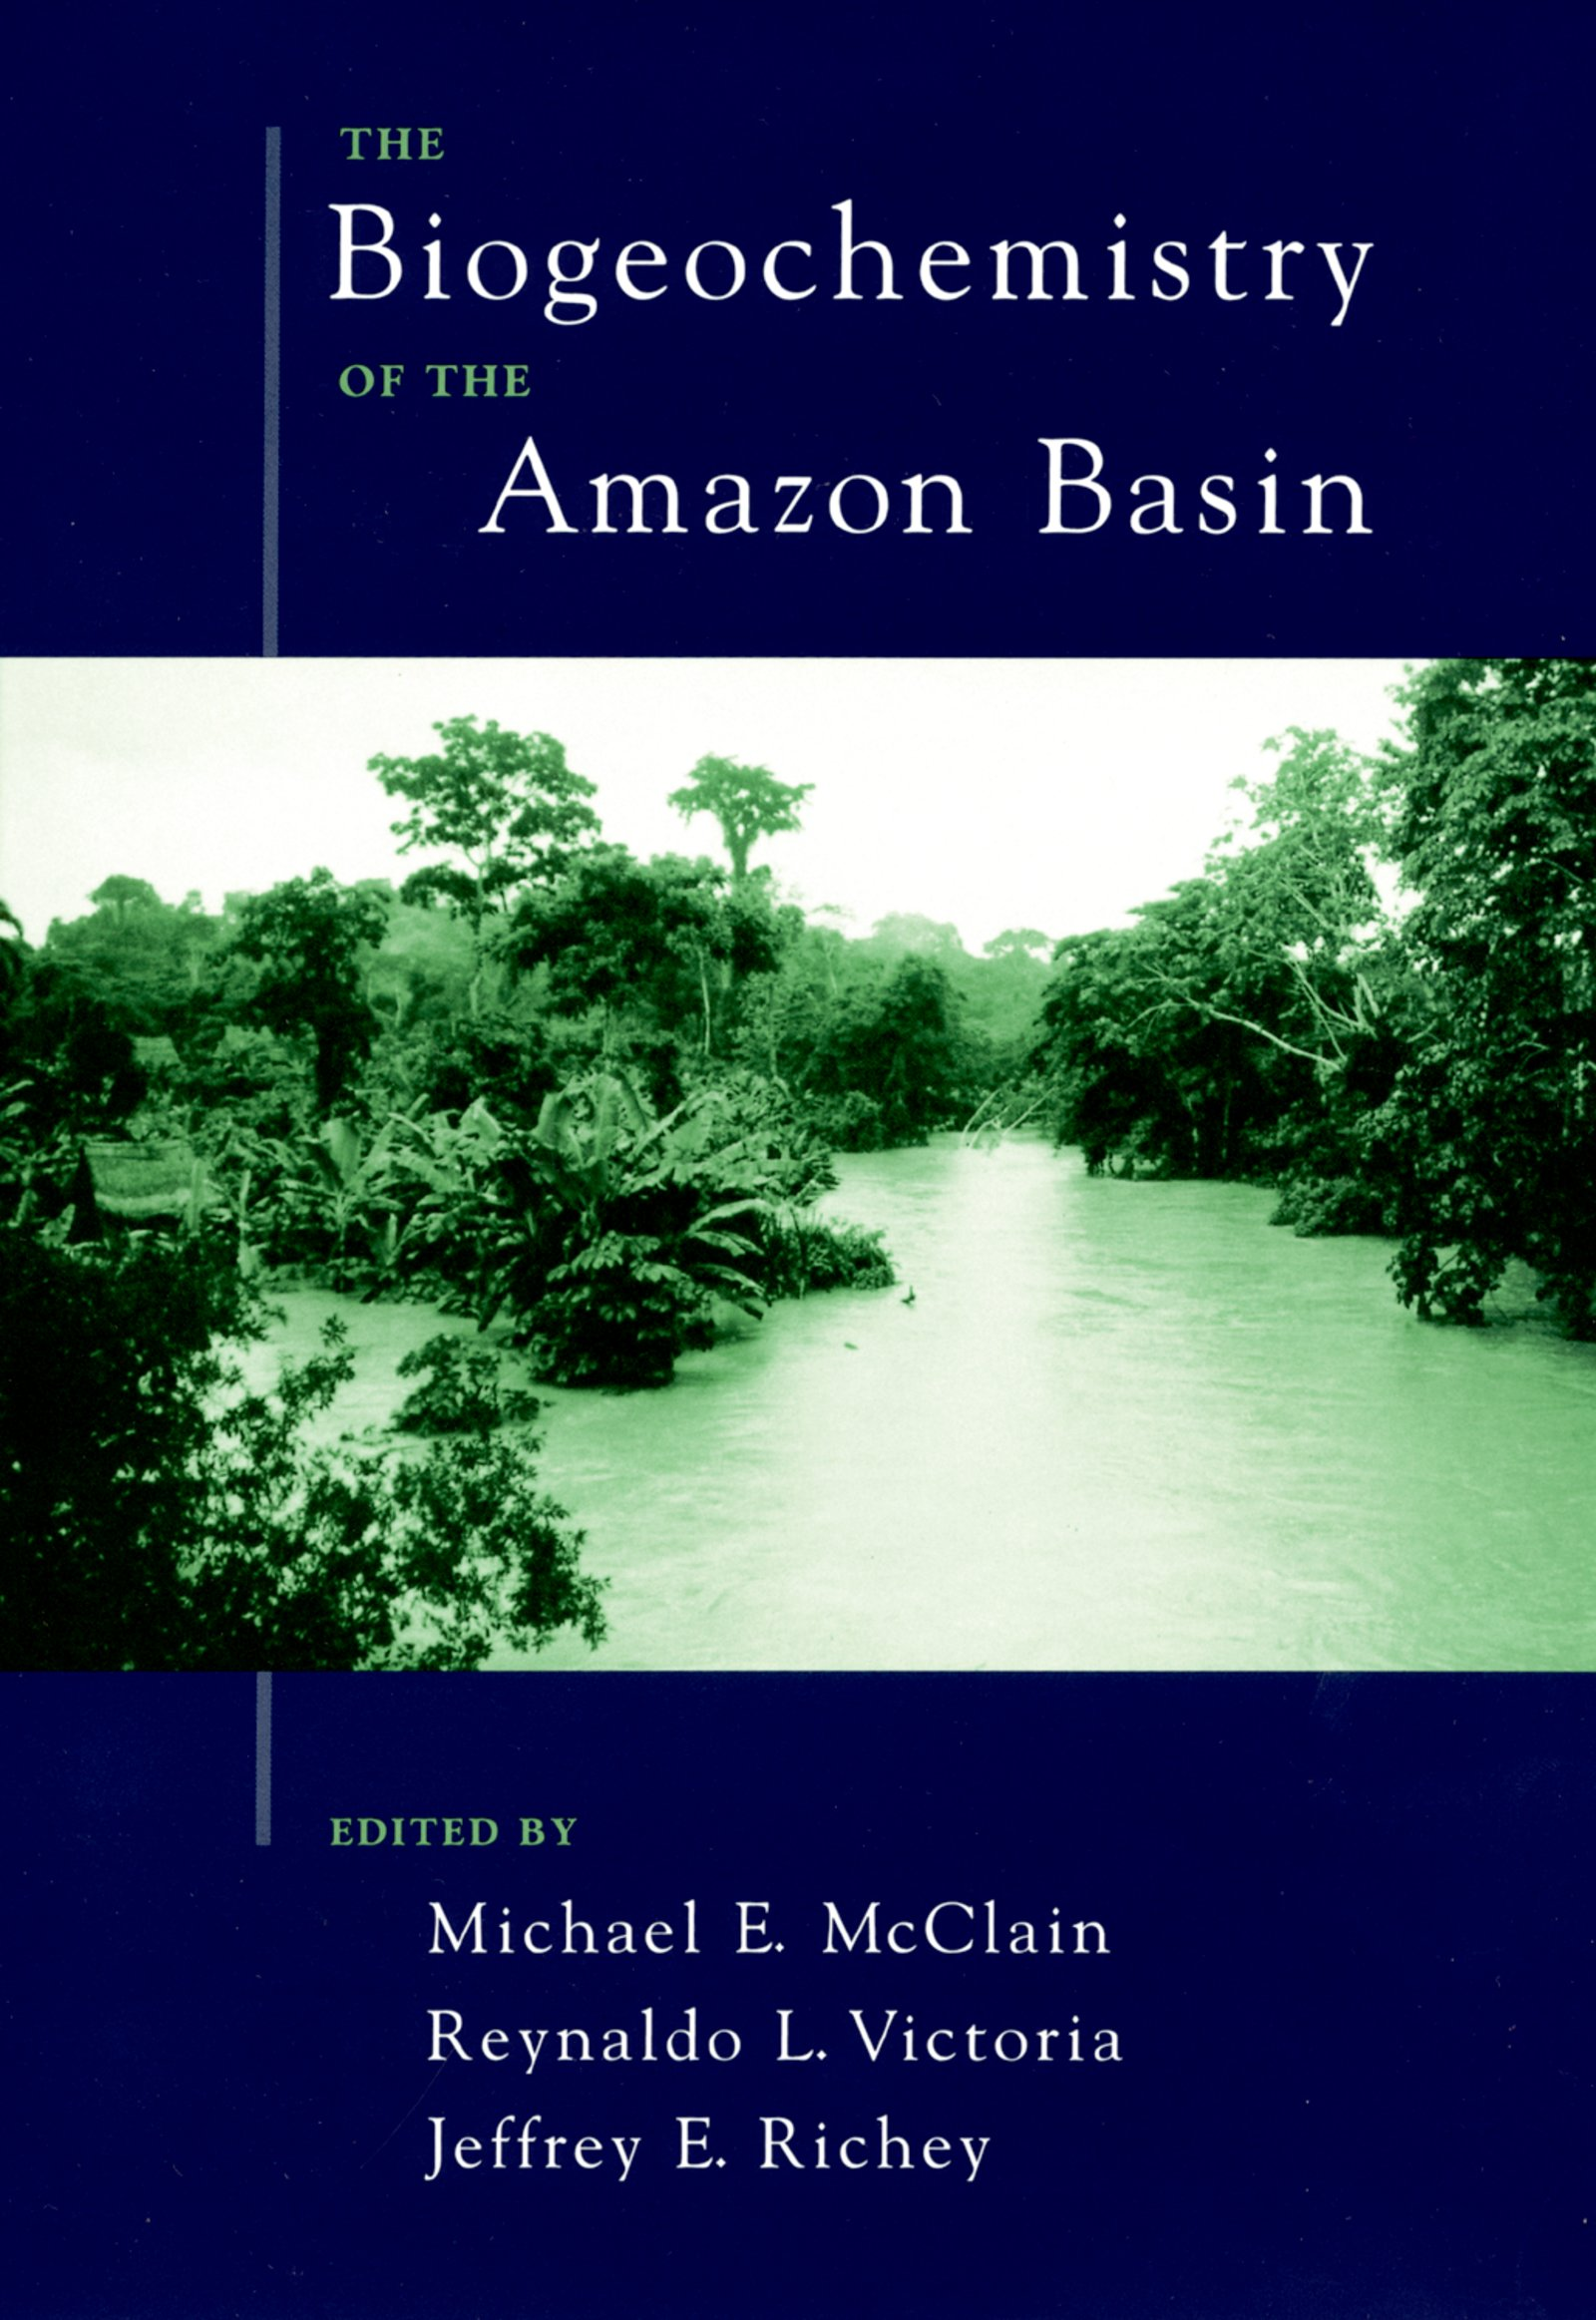 The Biogeochemistry of the Amazon Basin - Oxford Scholarship Online